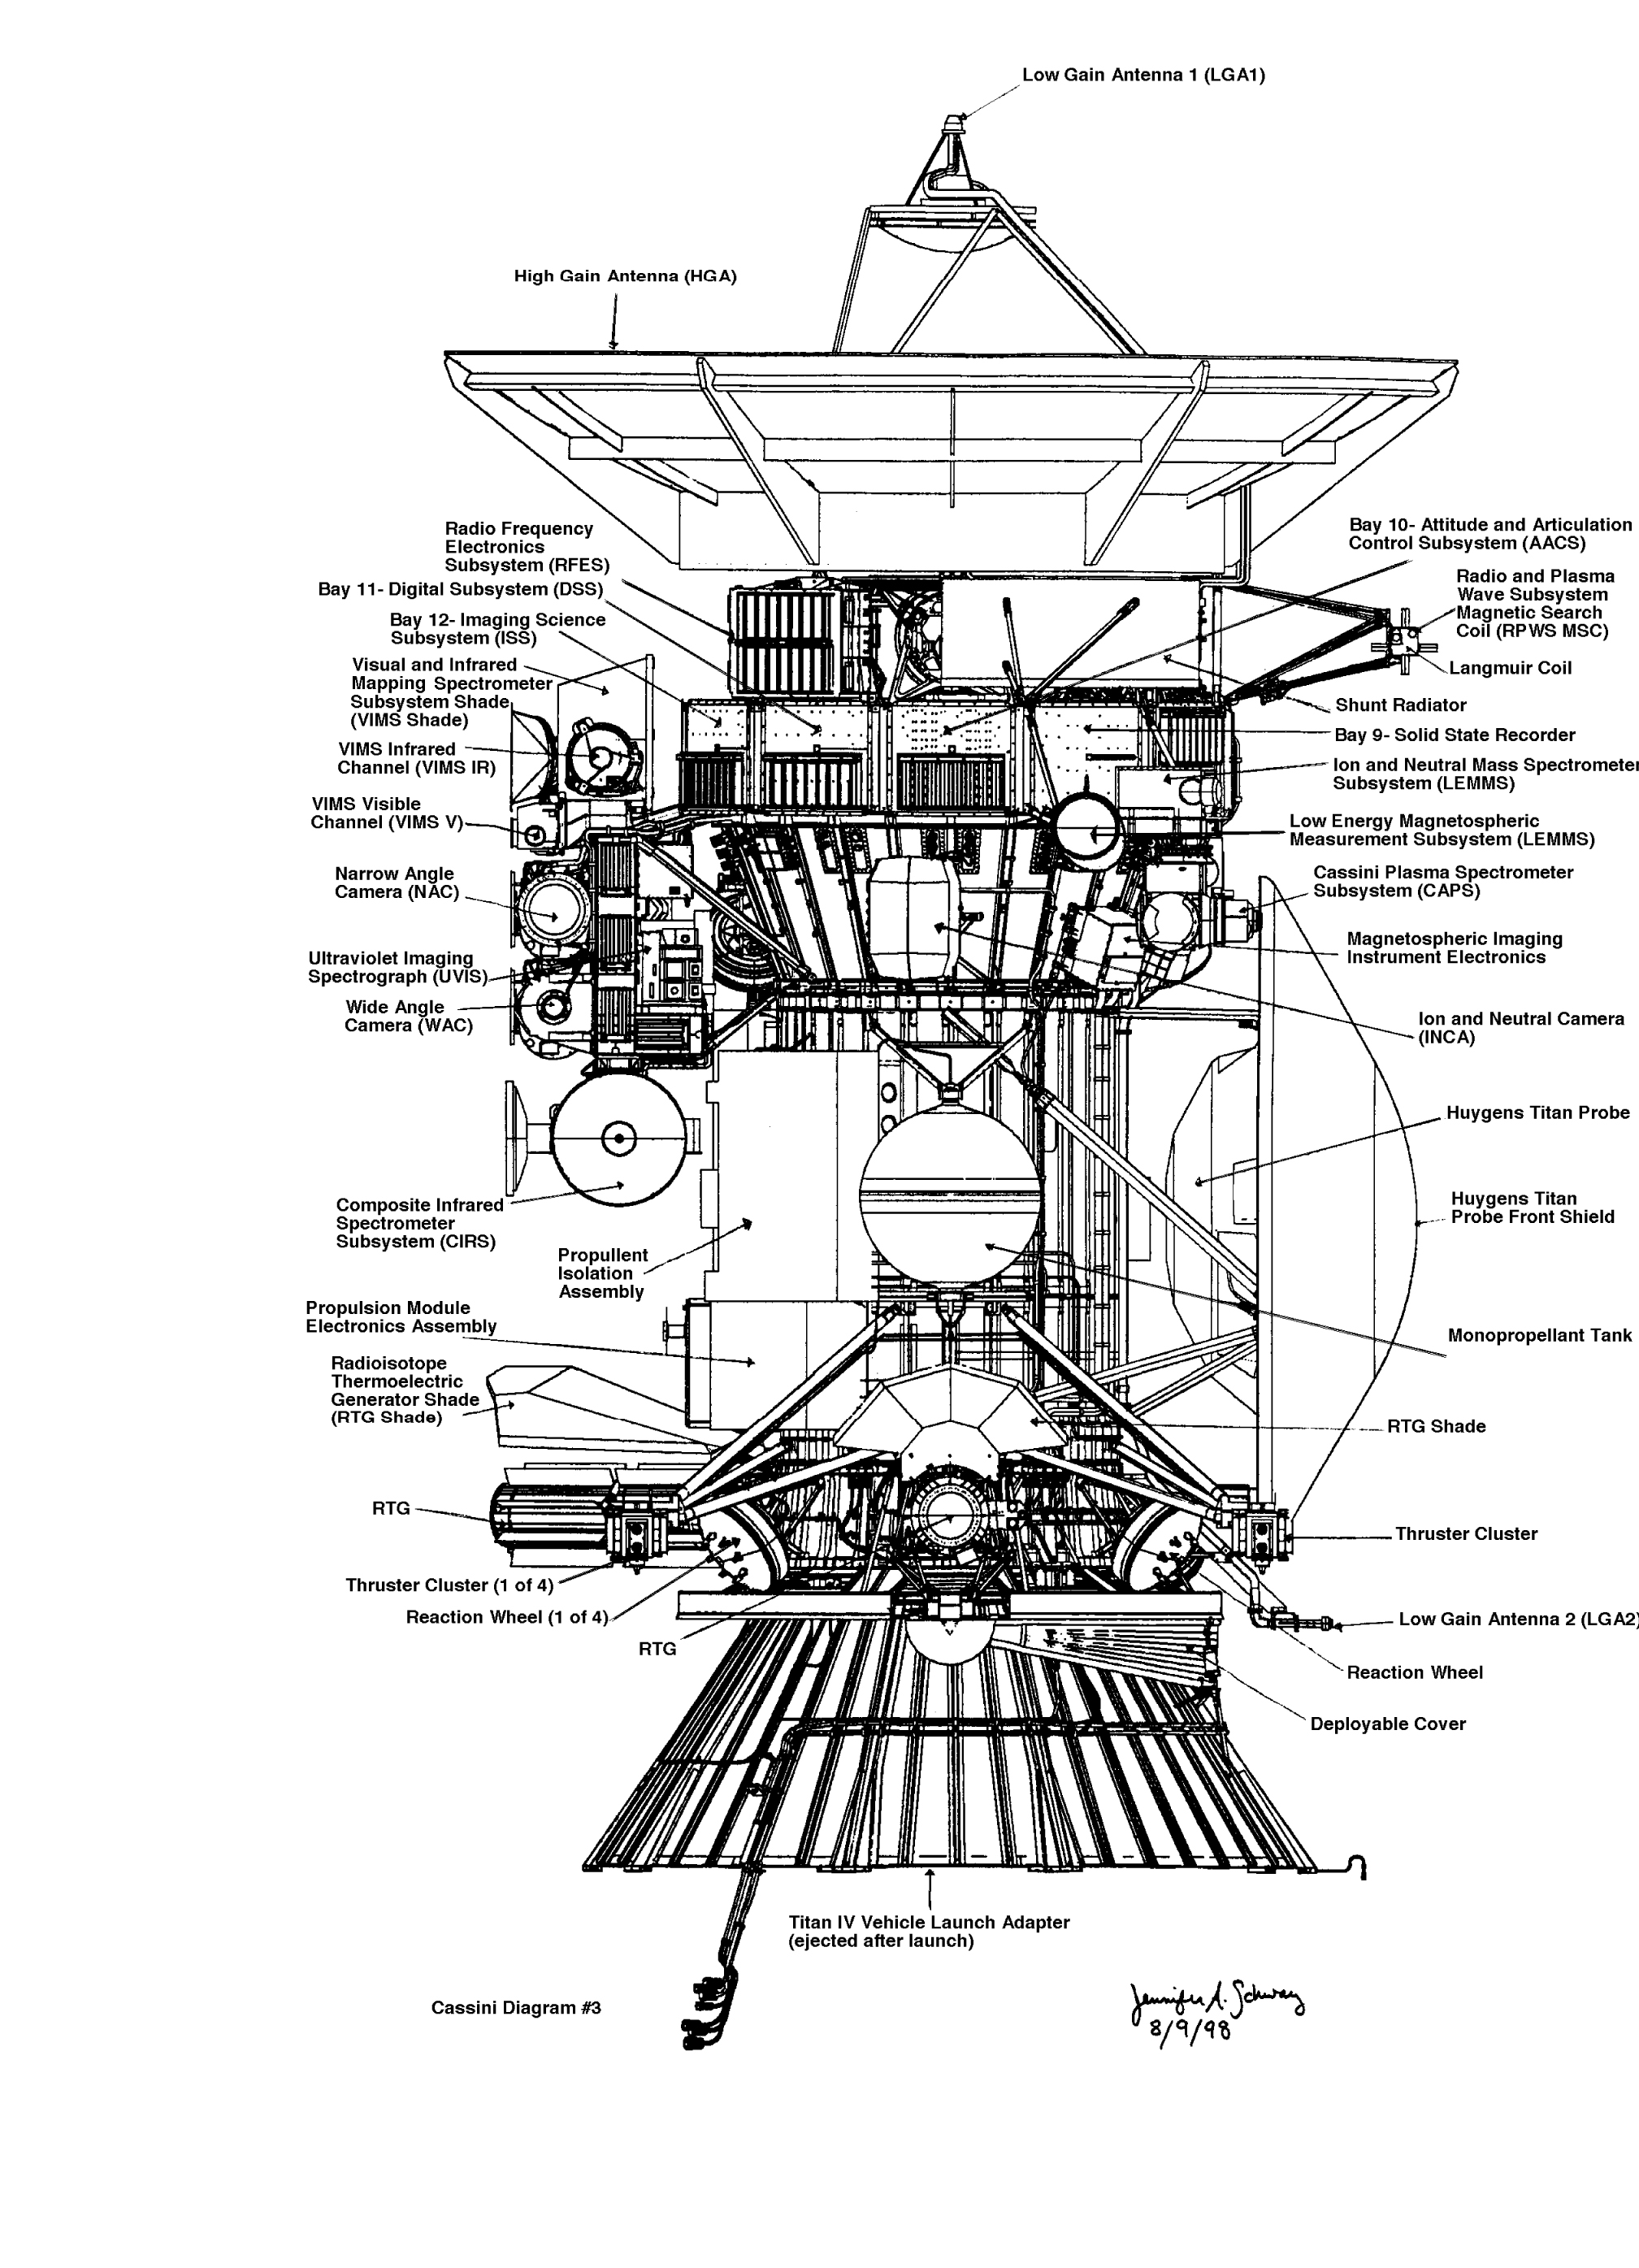 Cassini Diagram No 3